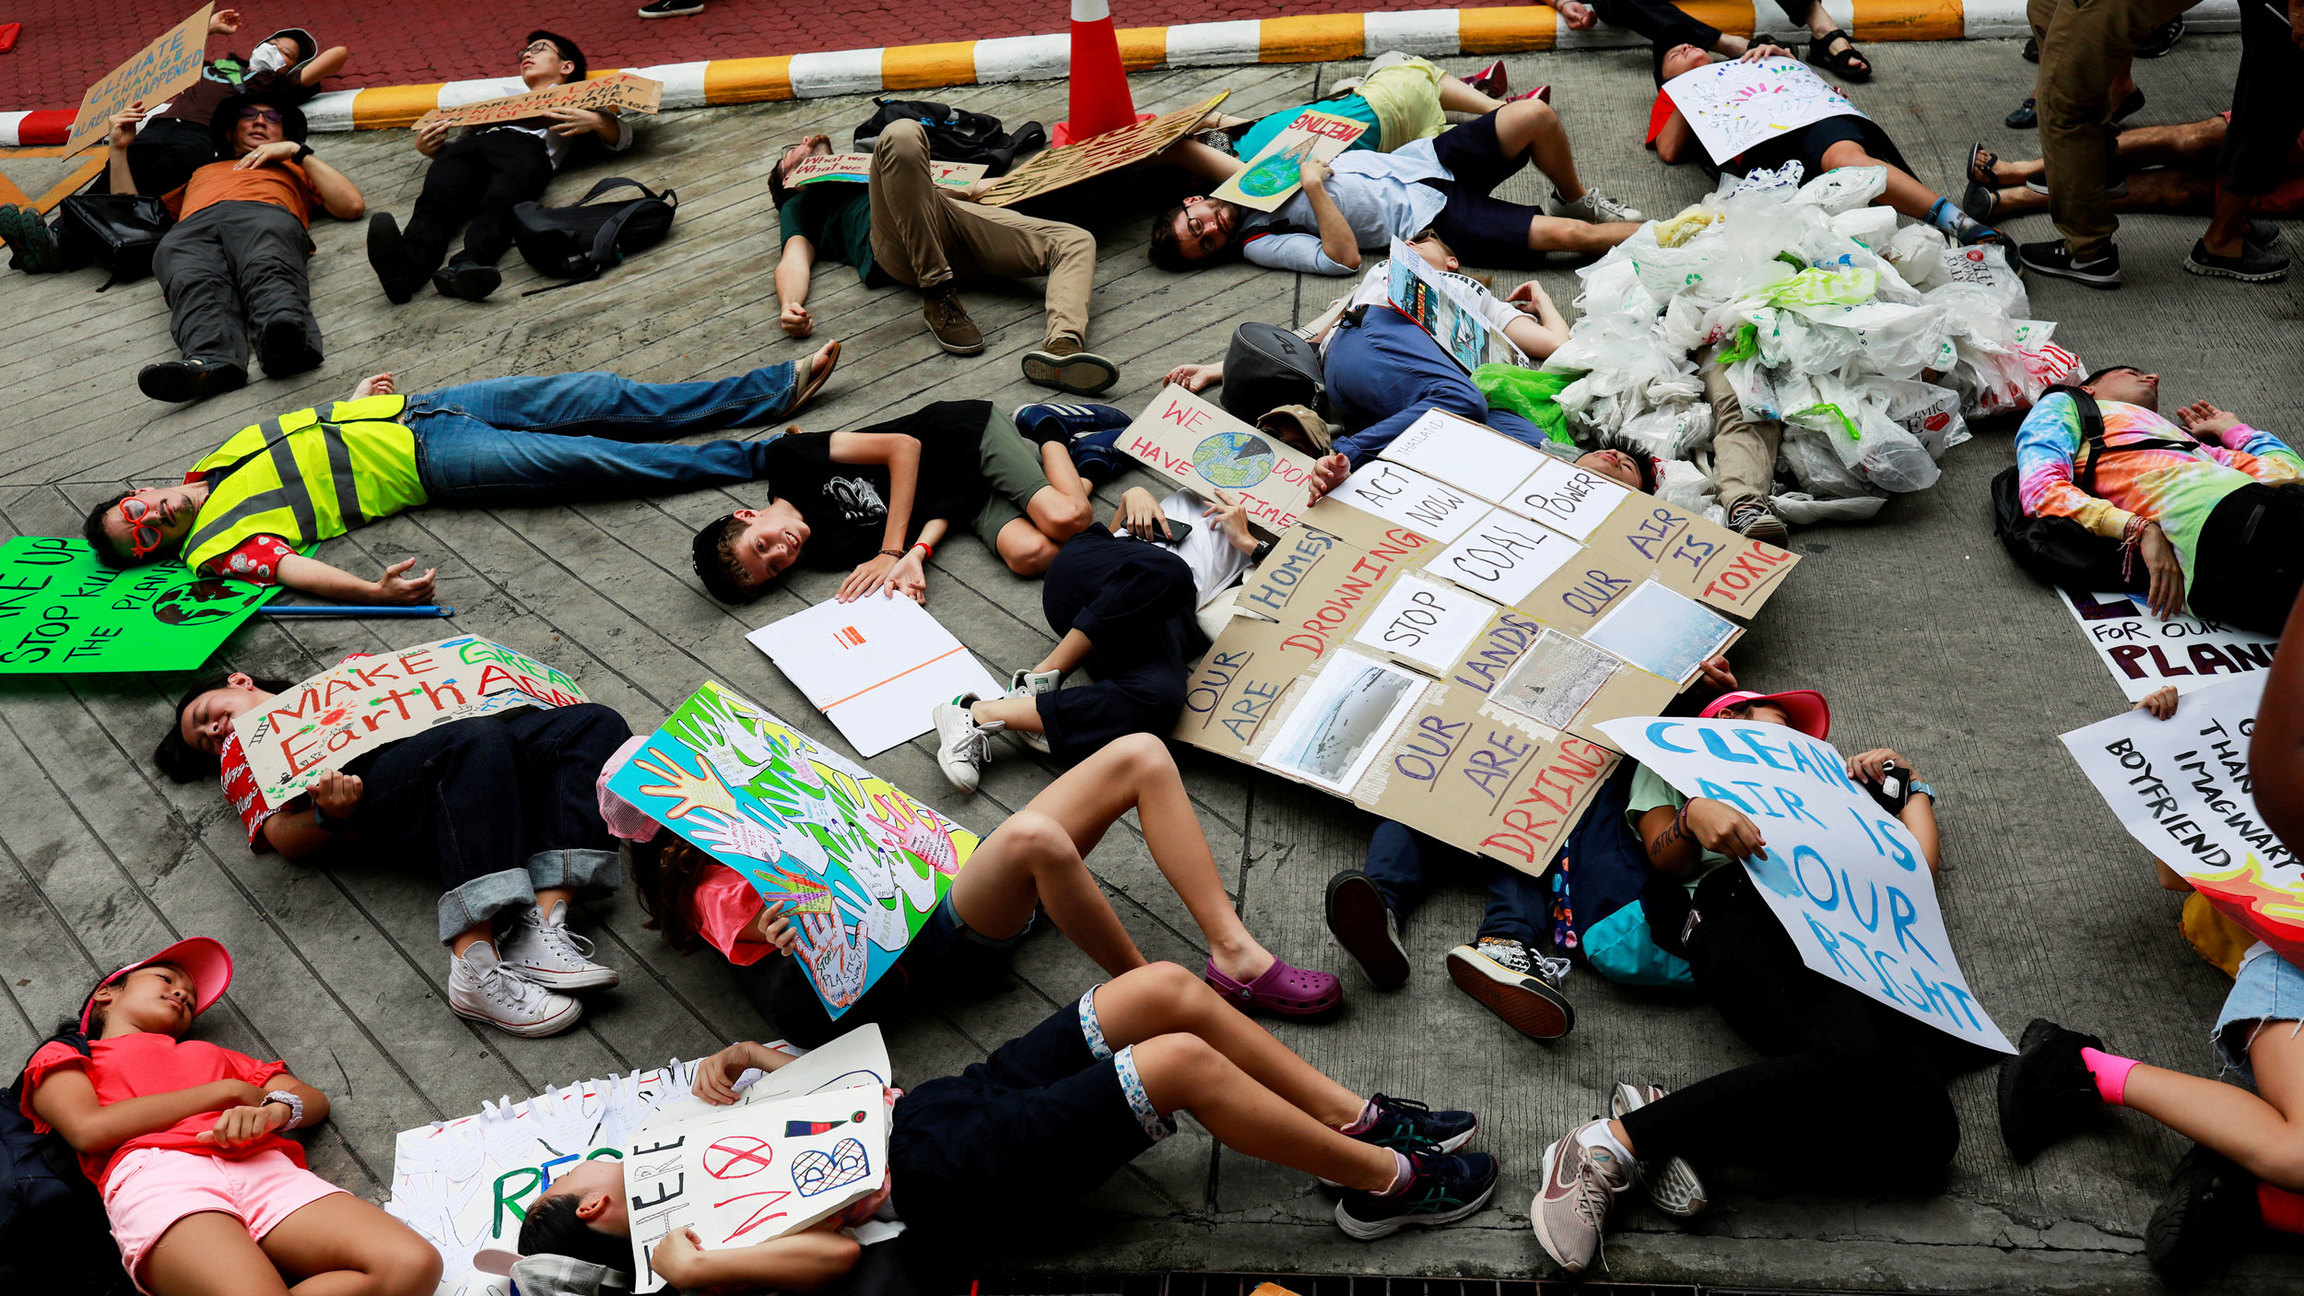 Several young people are shown laying down on the ground with placards protesting for climate change action.